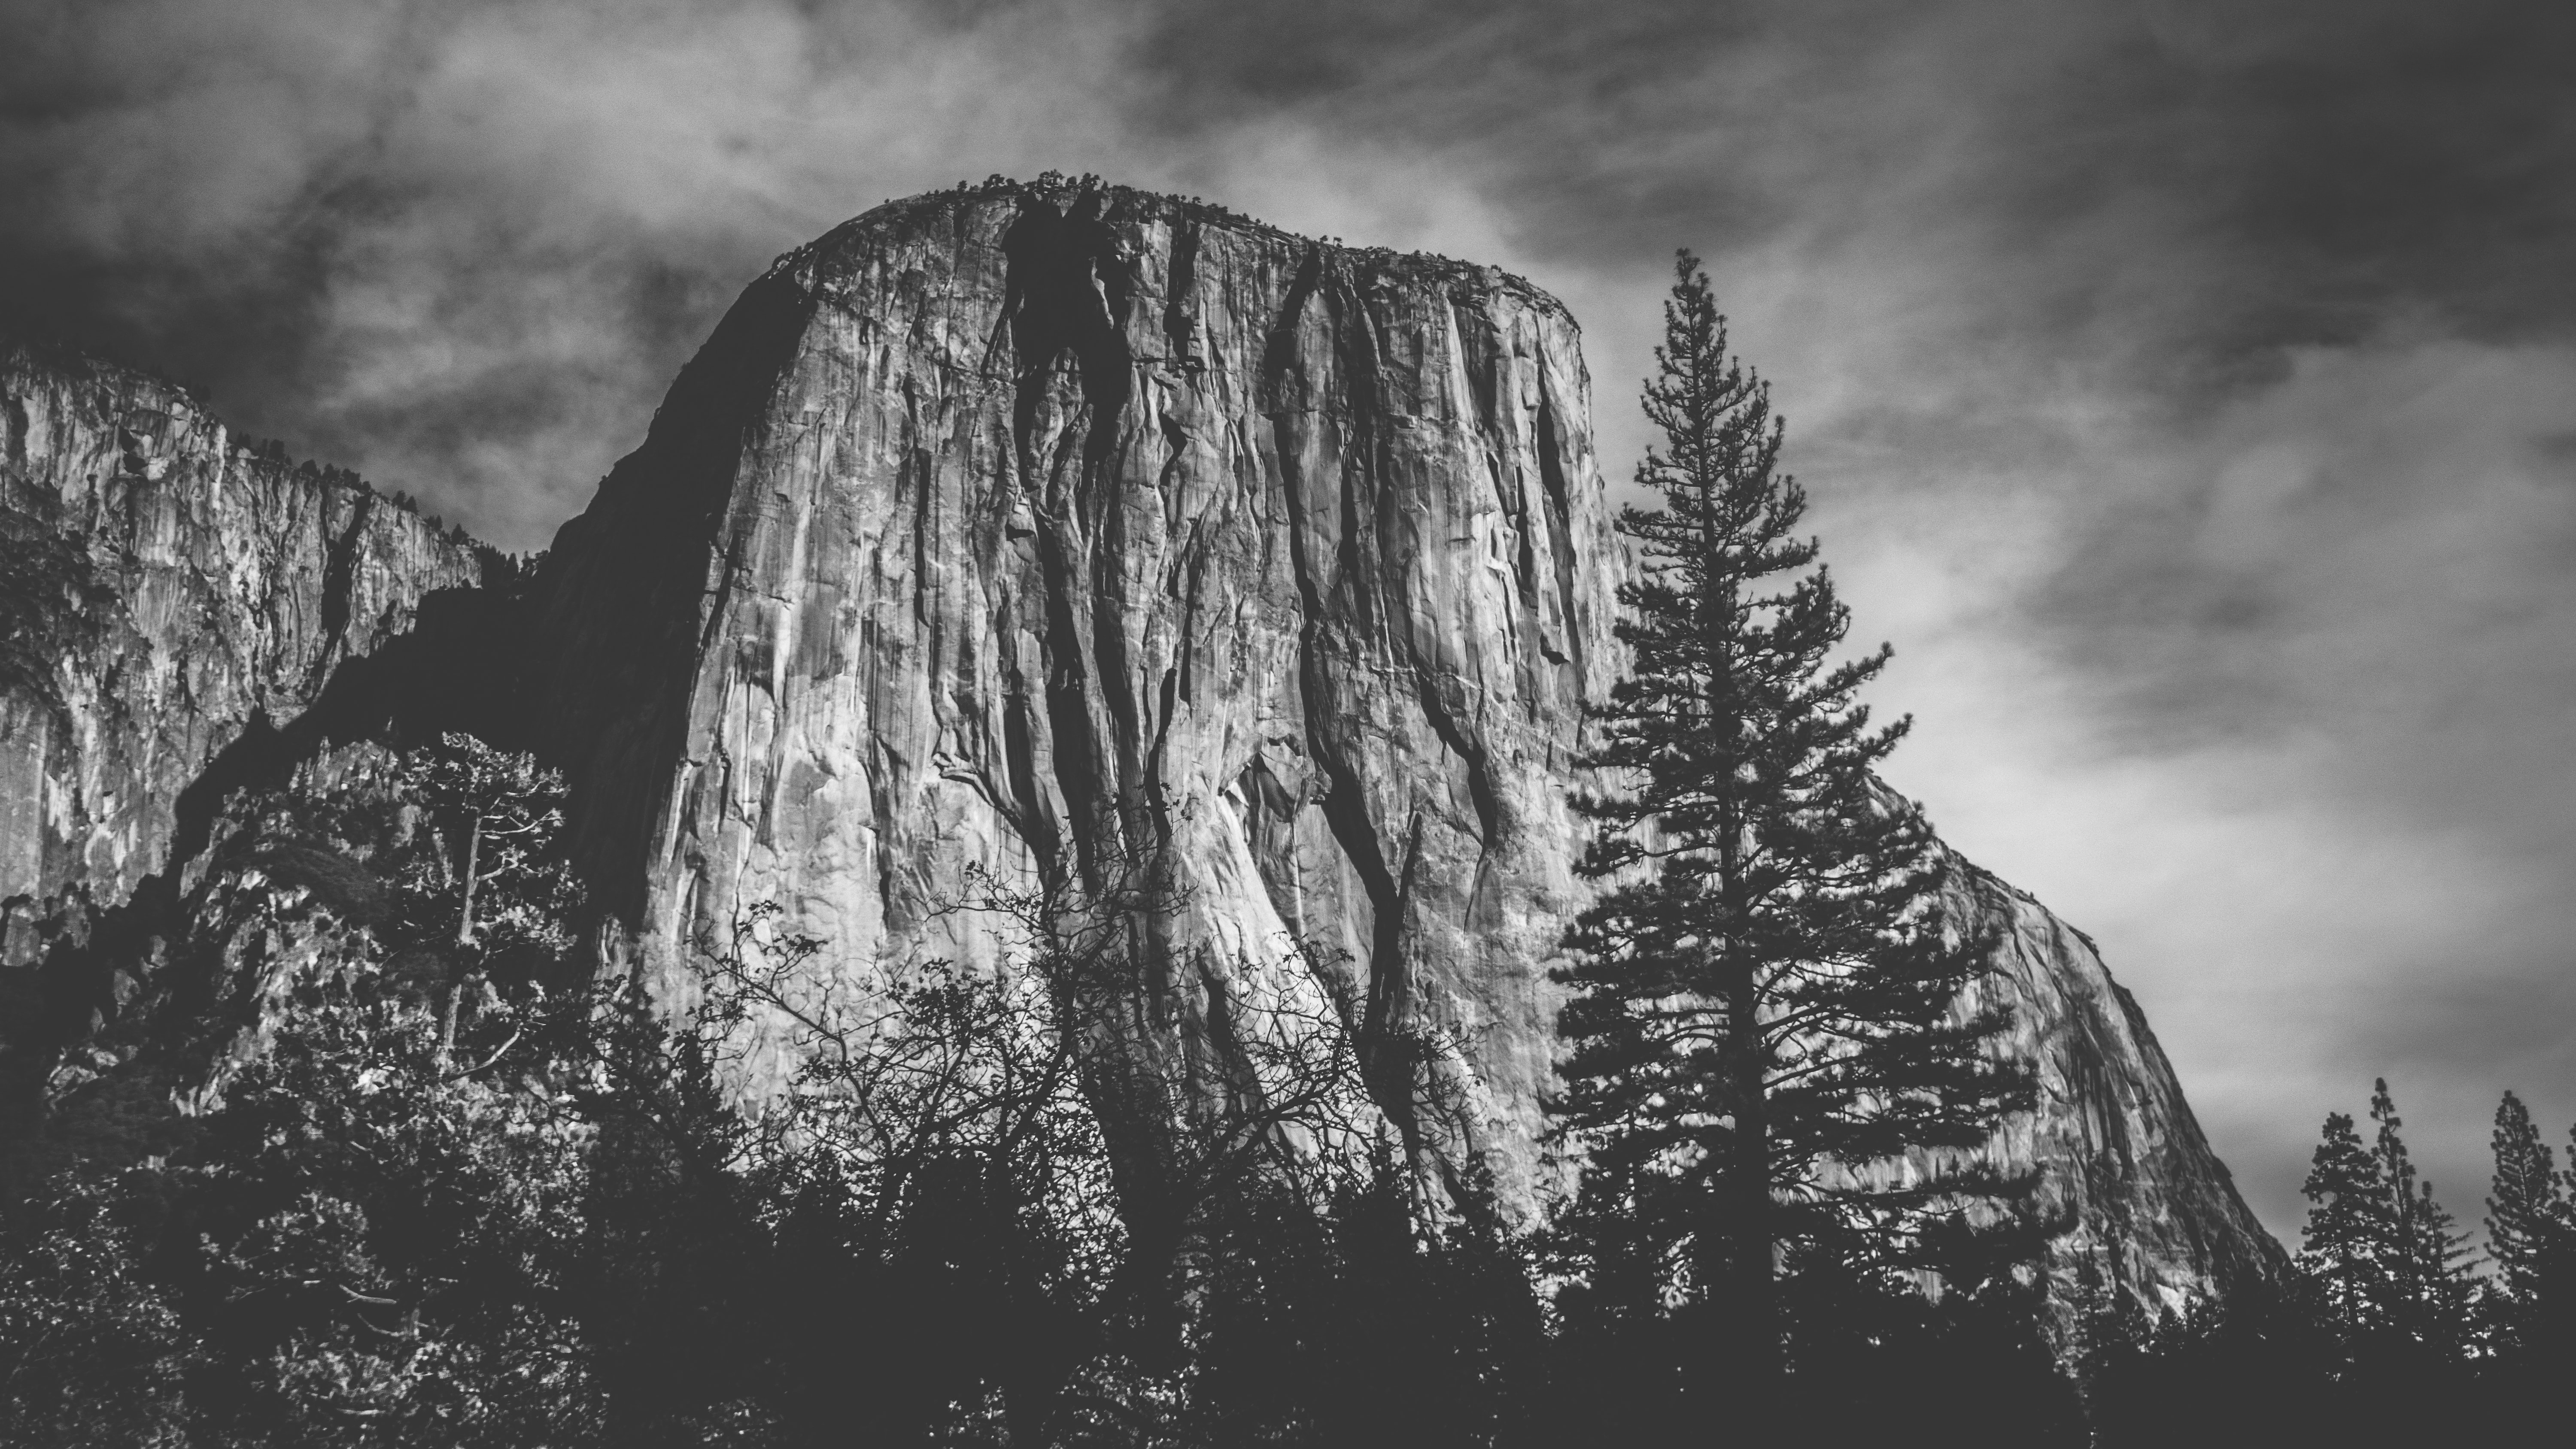 Black and white shot of El Capitan rock in Yosemite Park with trees in front